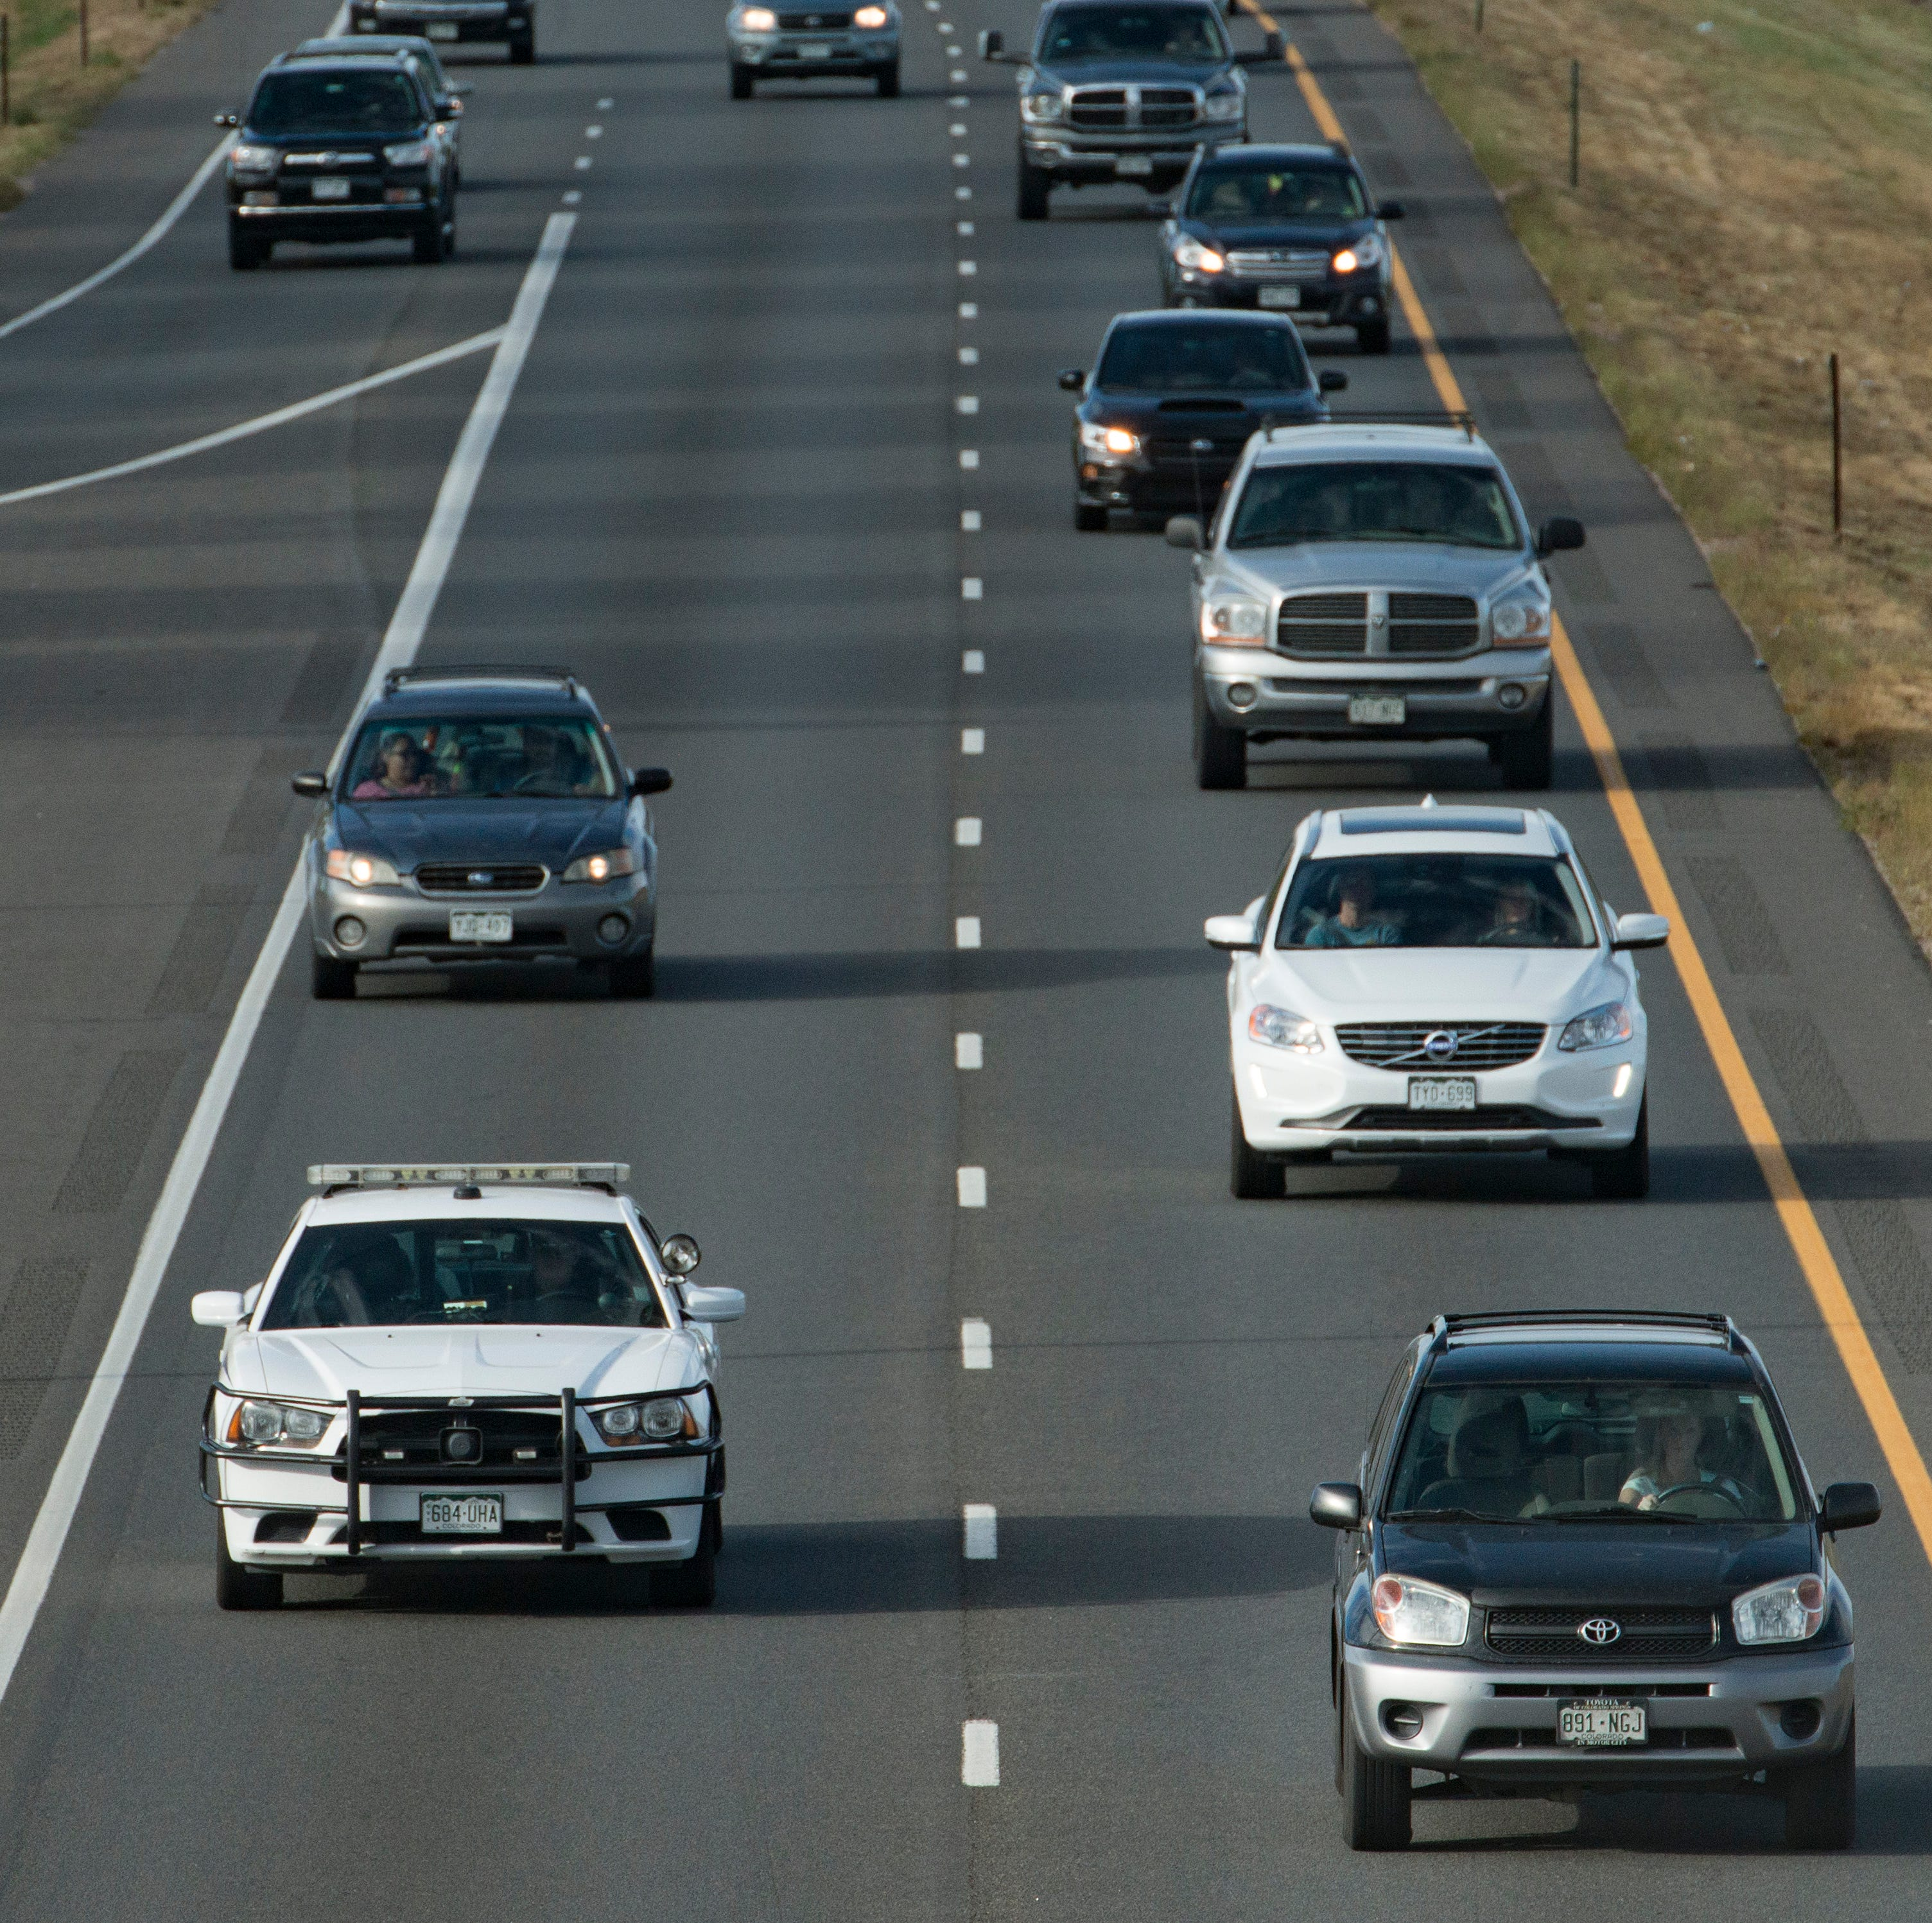 interstate 25 frontage road in fort collins to close permanently interstate 25 frontage road in fort